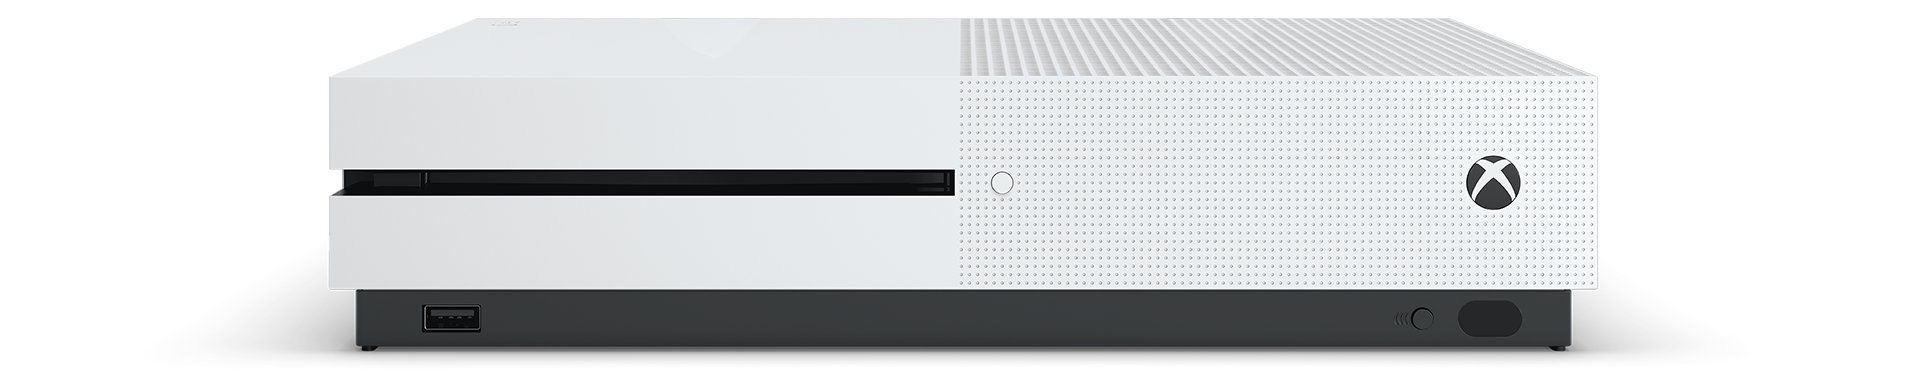 Microsoft's 4K Video Game Xbox One S to Hit the UK on August 2